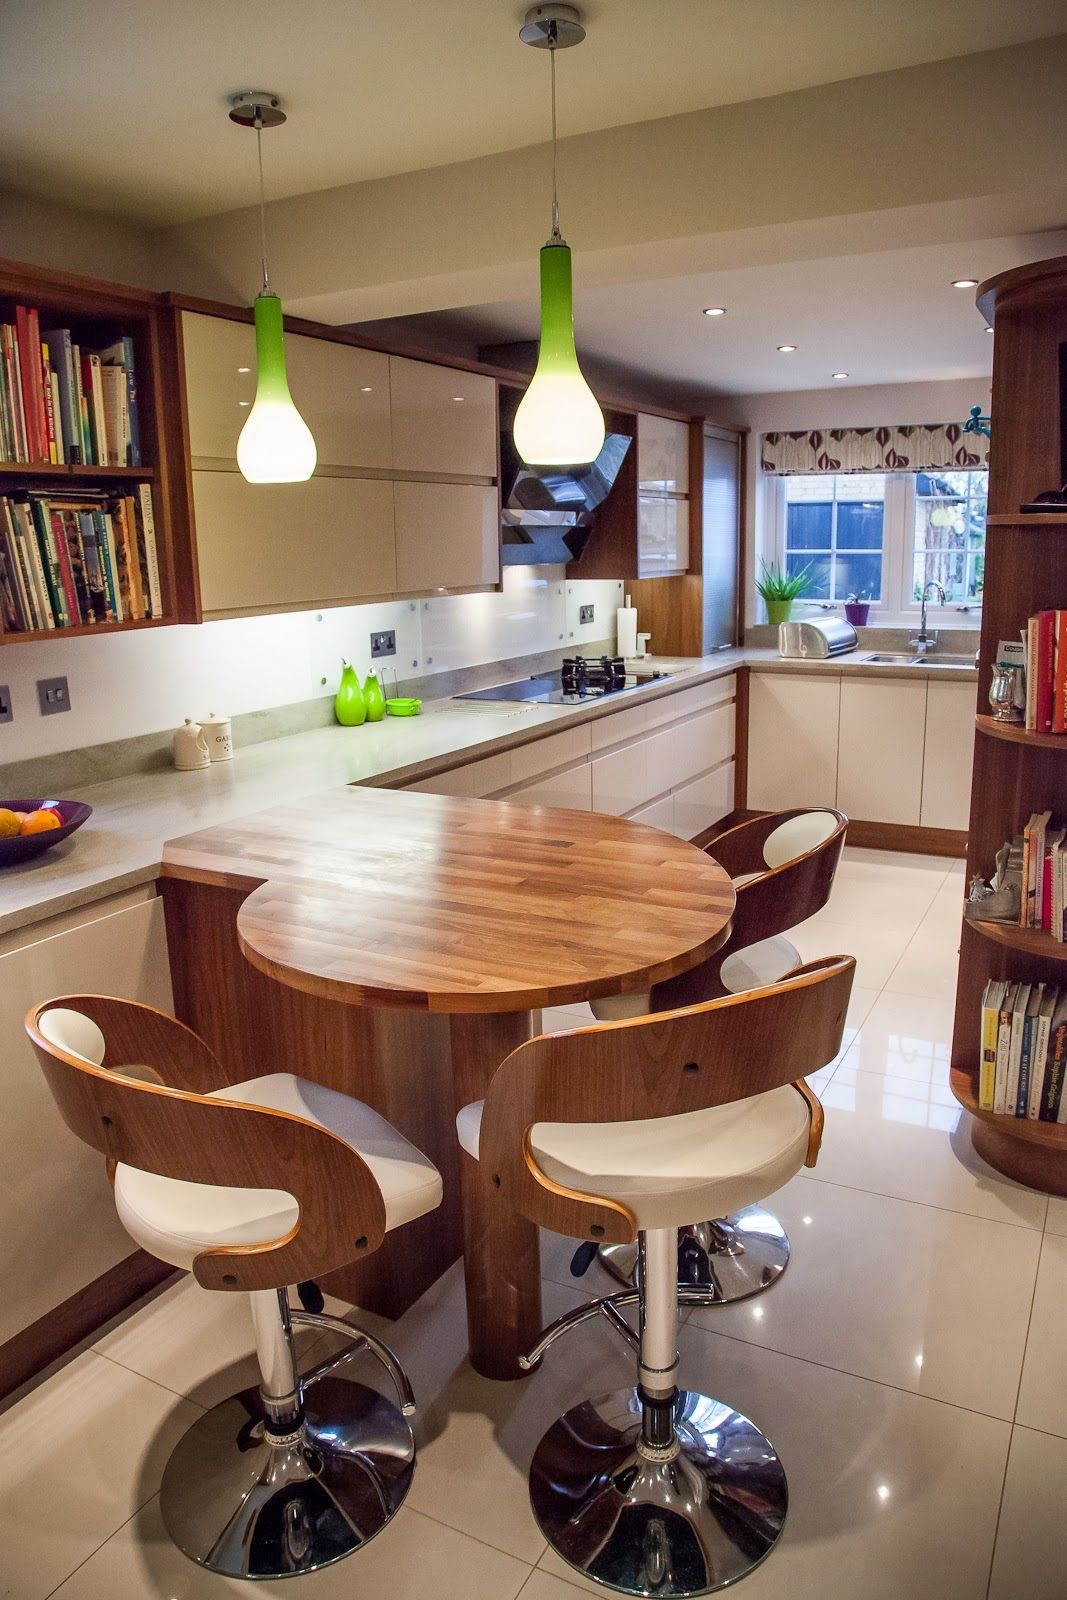 Wooden Round Breakfast Bar Situating Under Lime Green Modern Pendants With Wooden Back White